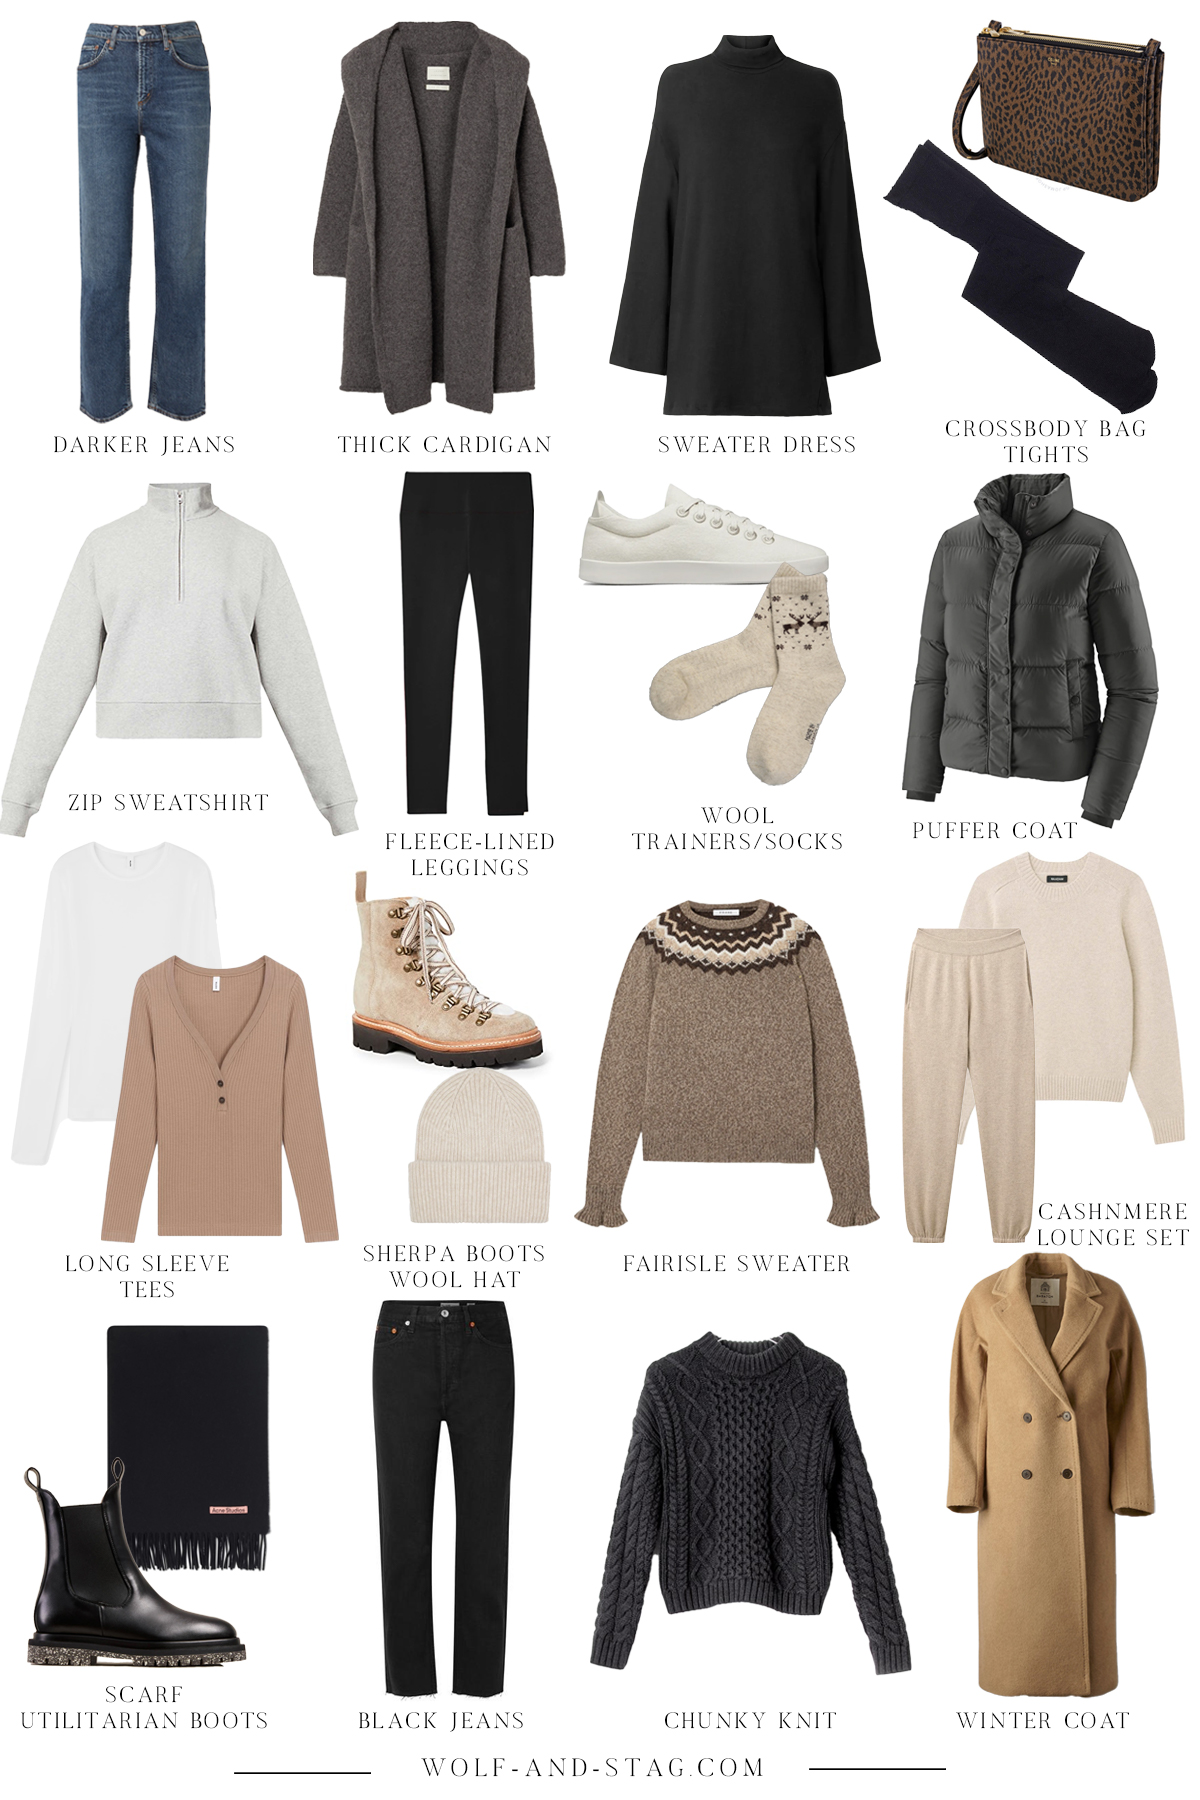 The (Mostly) Sustainable Capsule Wardrobe - a winter update | the cozy, comfy, and sustainable pieces to add to your capsule wardrobe for winter | W&S